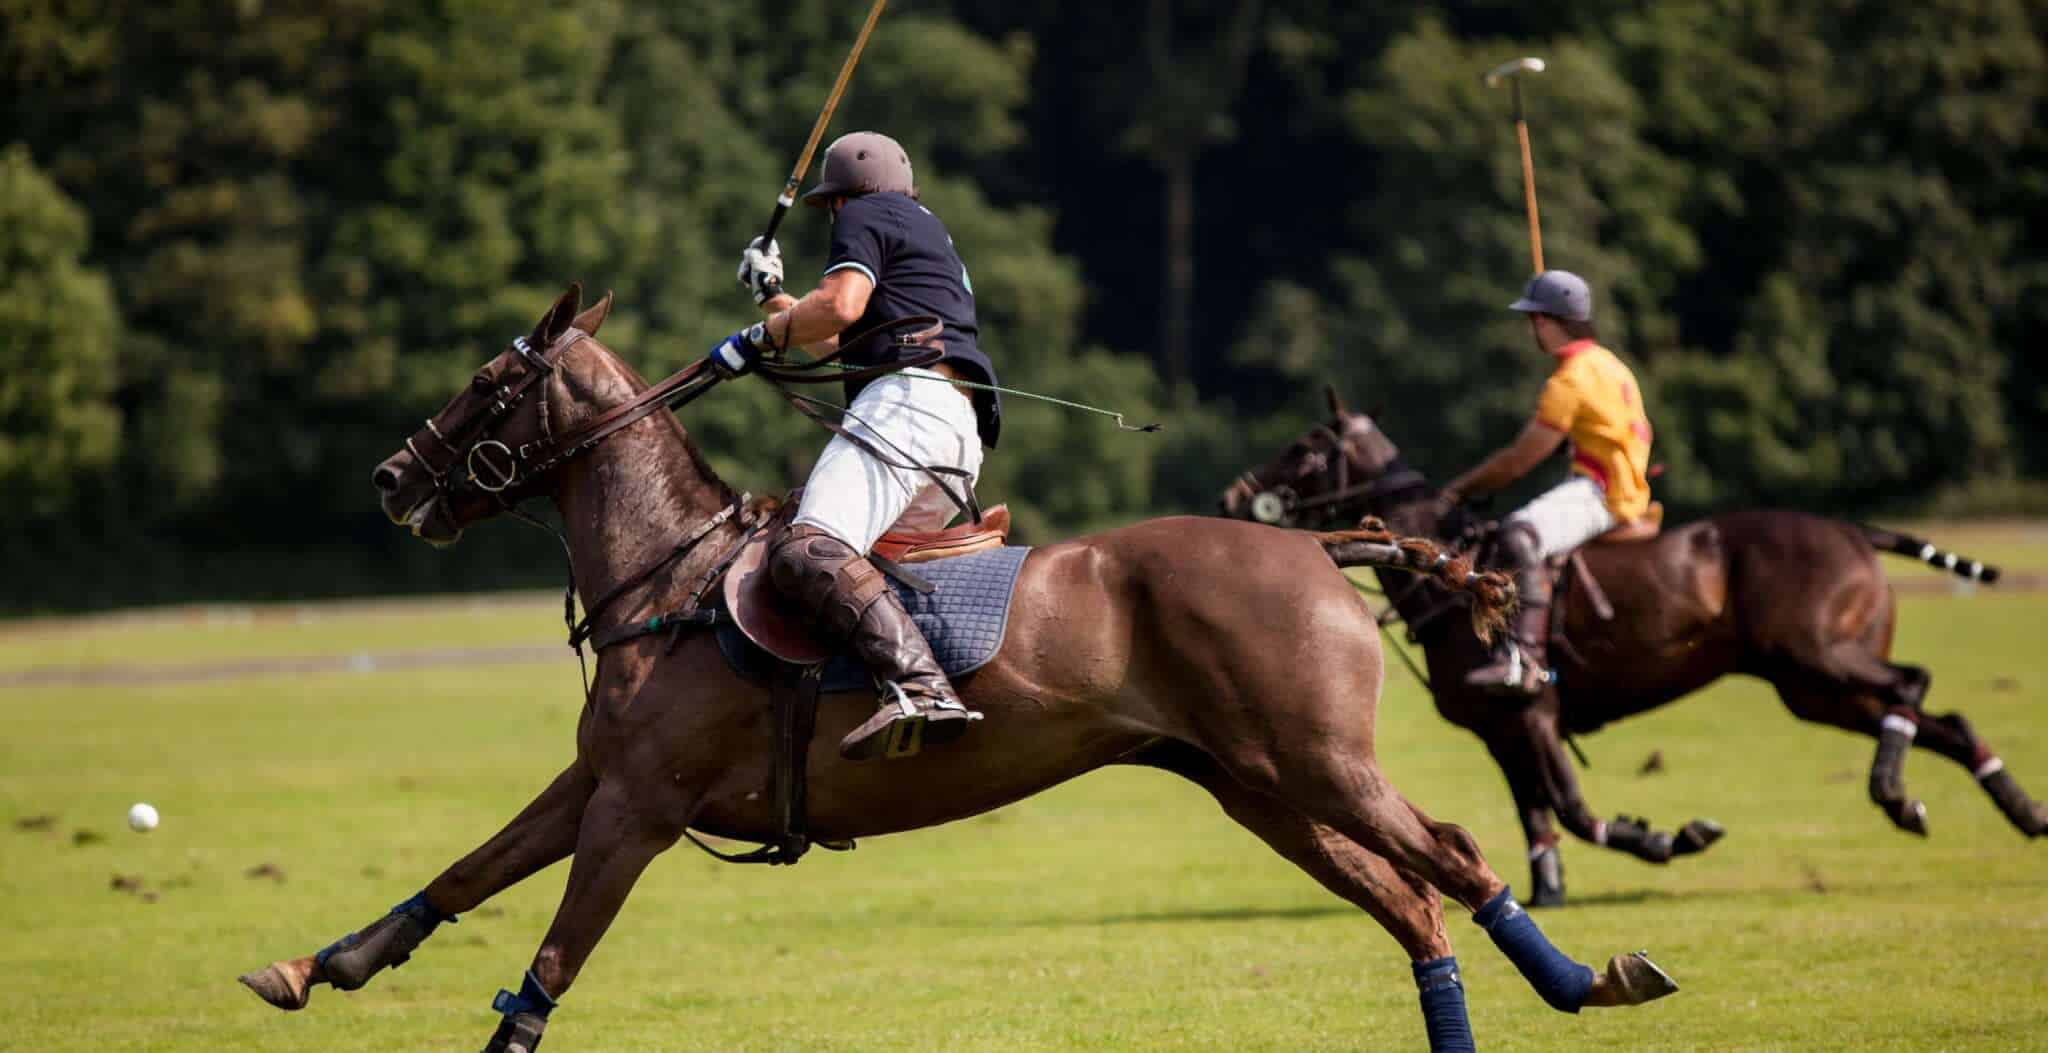 The origins and history of polo